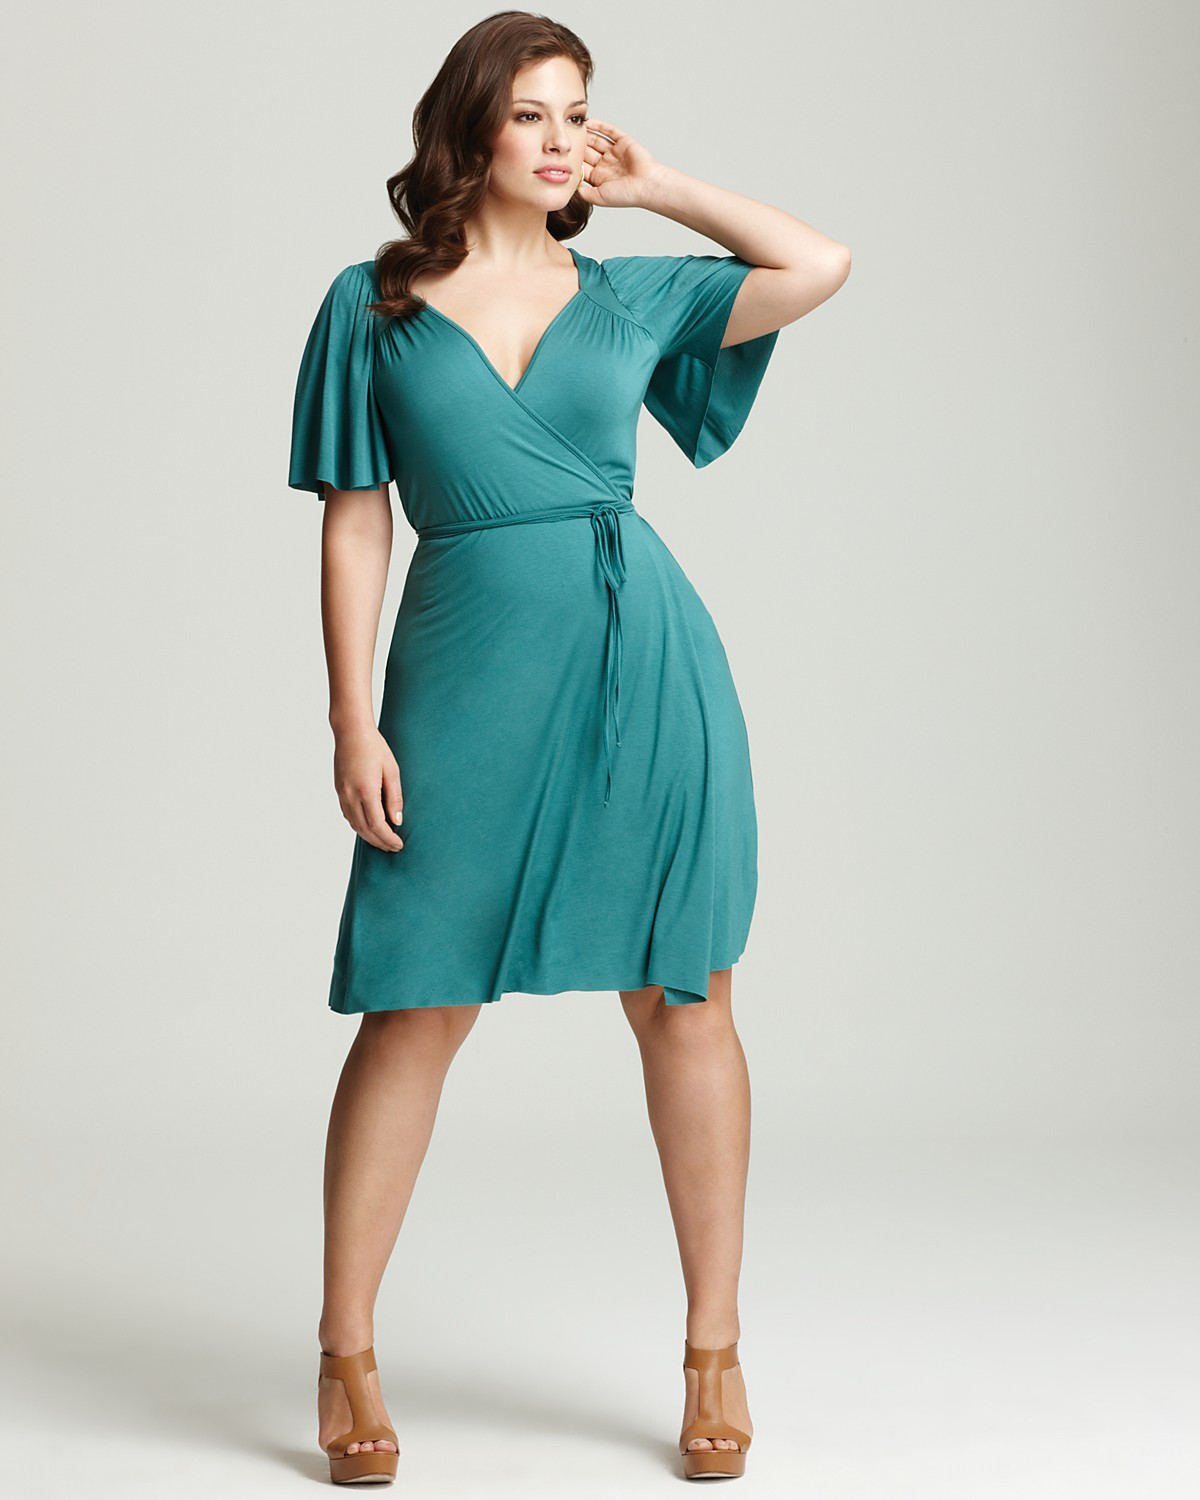 Wrap Dresses for hourglass figure